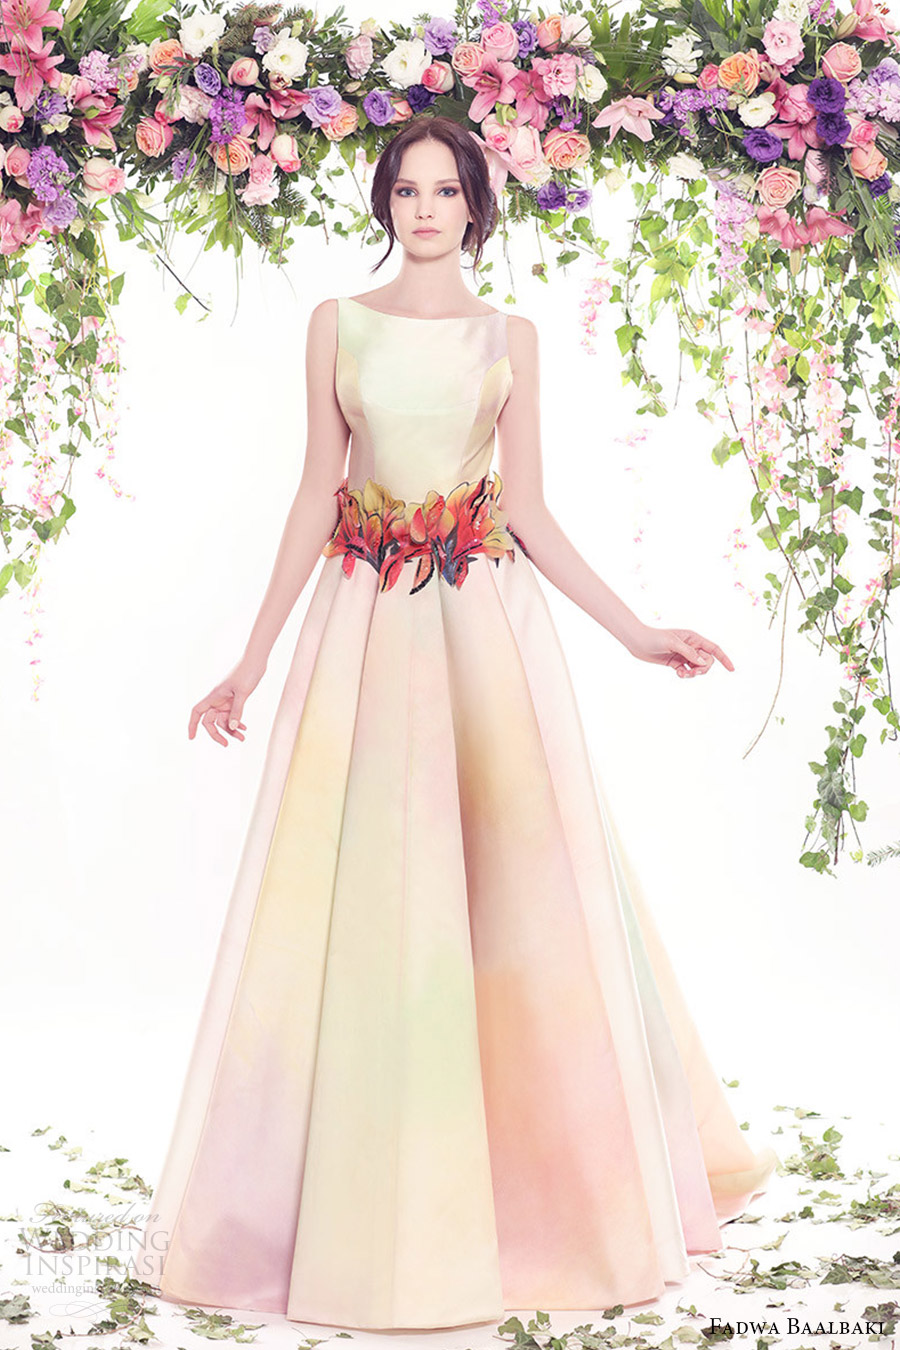 fadwa baalbaki spring 2016 couture sleeveless bateau neck ball gown multi color floral mv